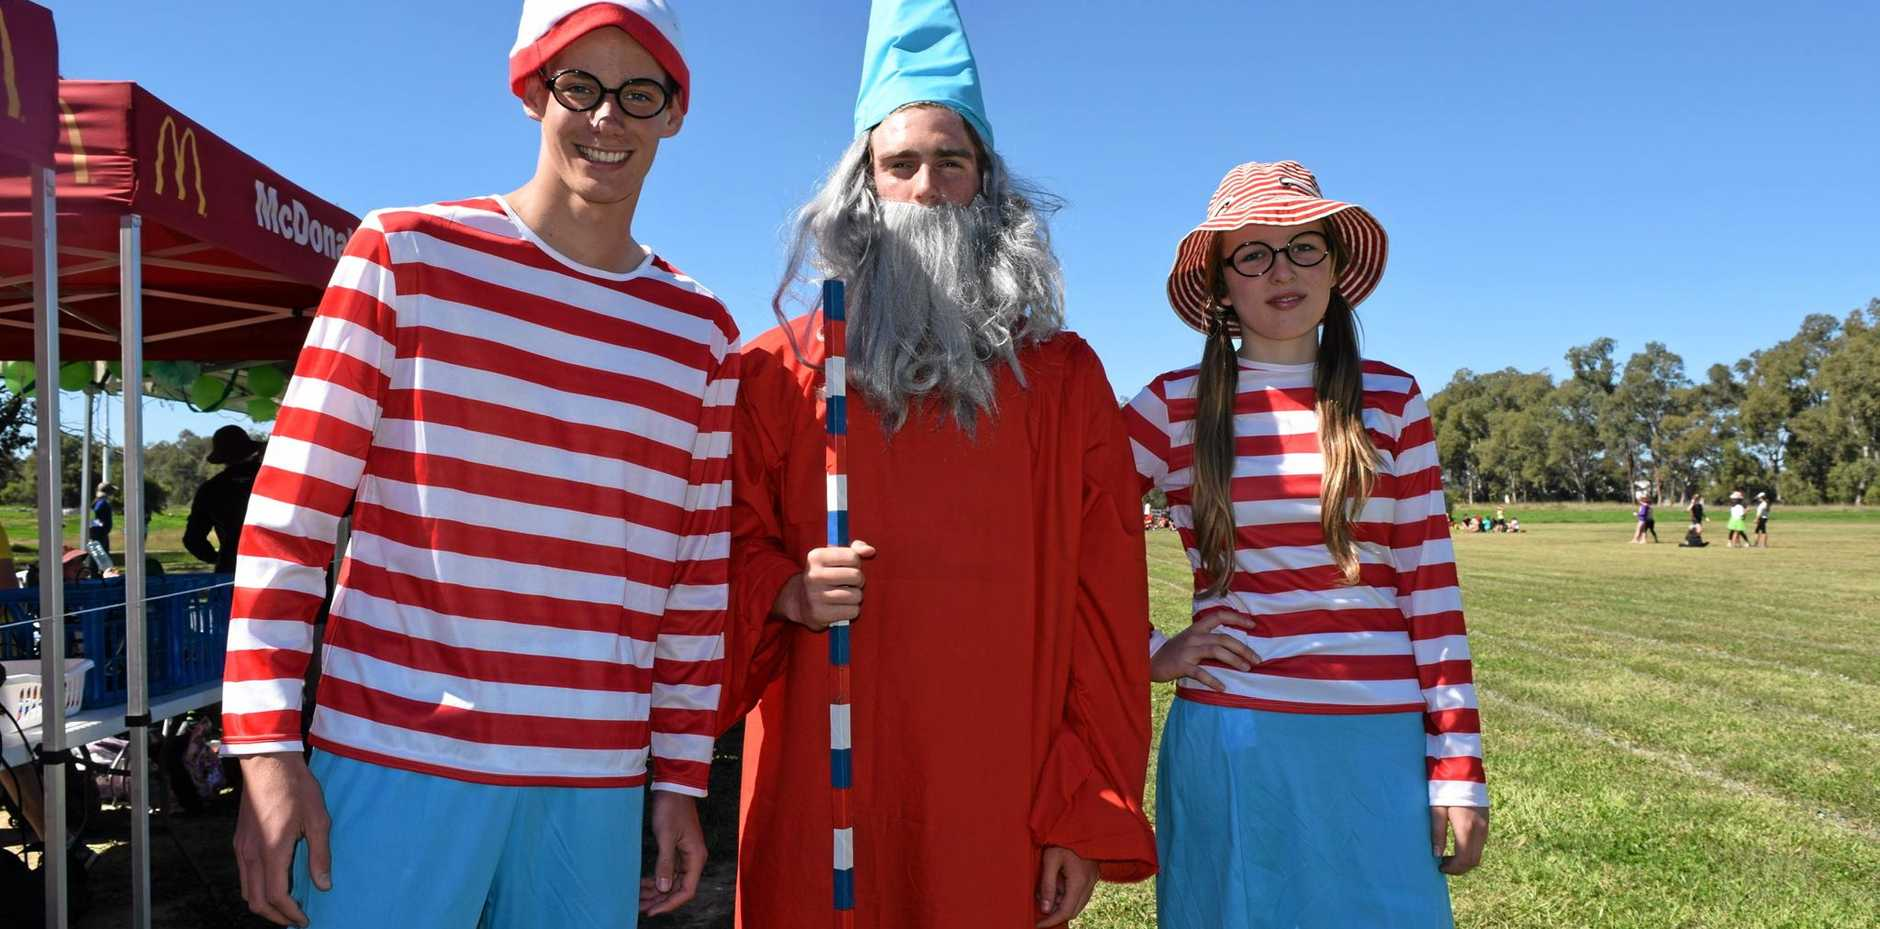 FINDING WALLY: Joshua Persky, Jamie Crawford and Carman Golder dressed up for their sports day.